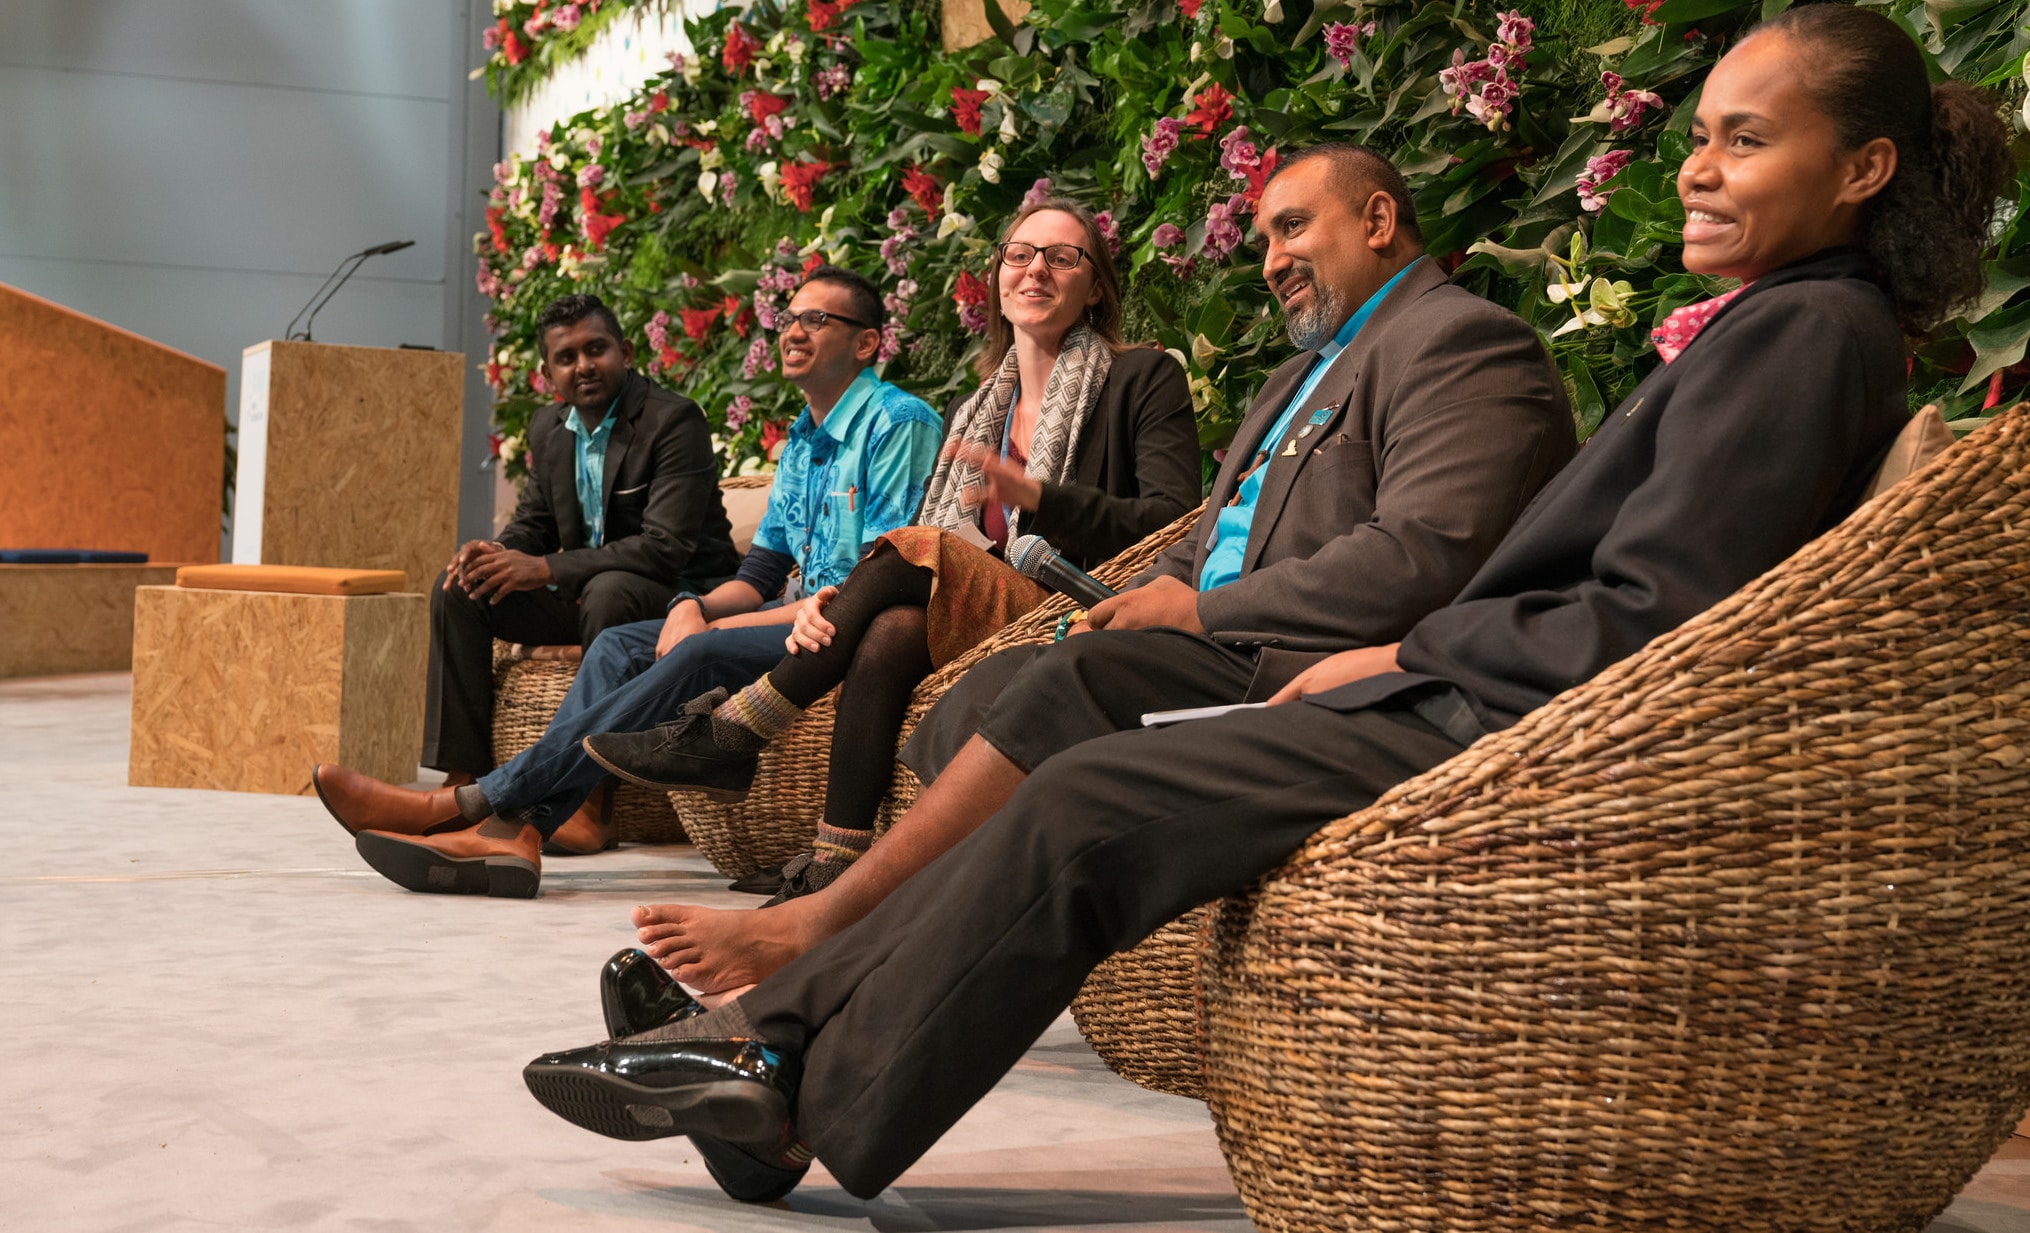 A 'Talanoa' meeting during climate talks in Bonn, Germany in November (Photo: UNclimatechange/Flickr)